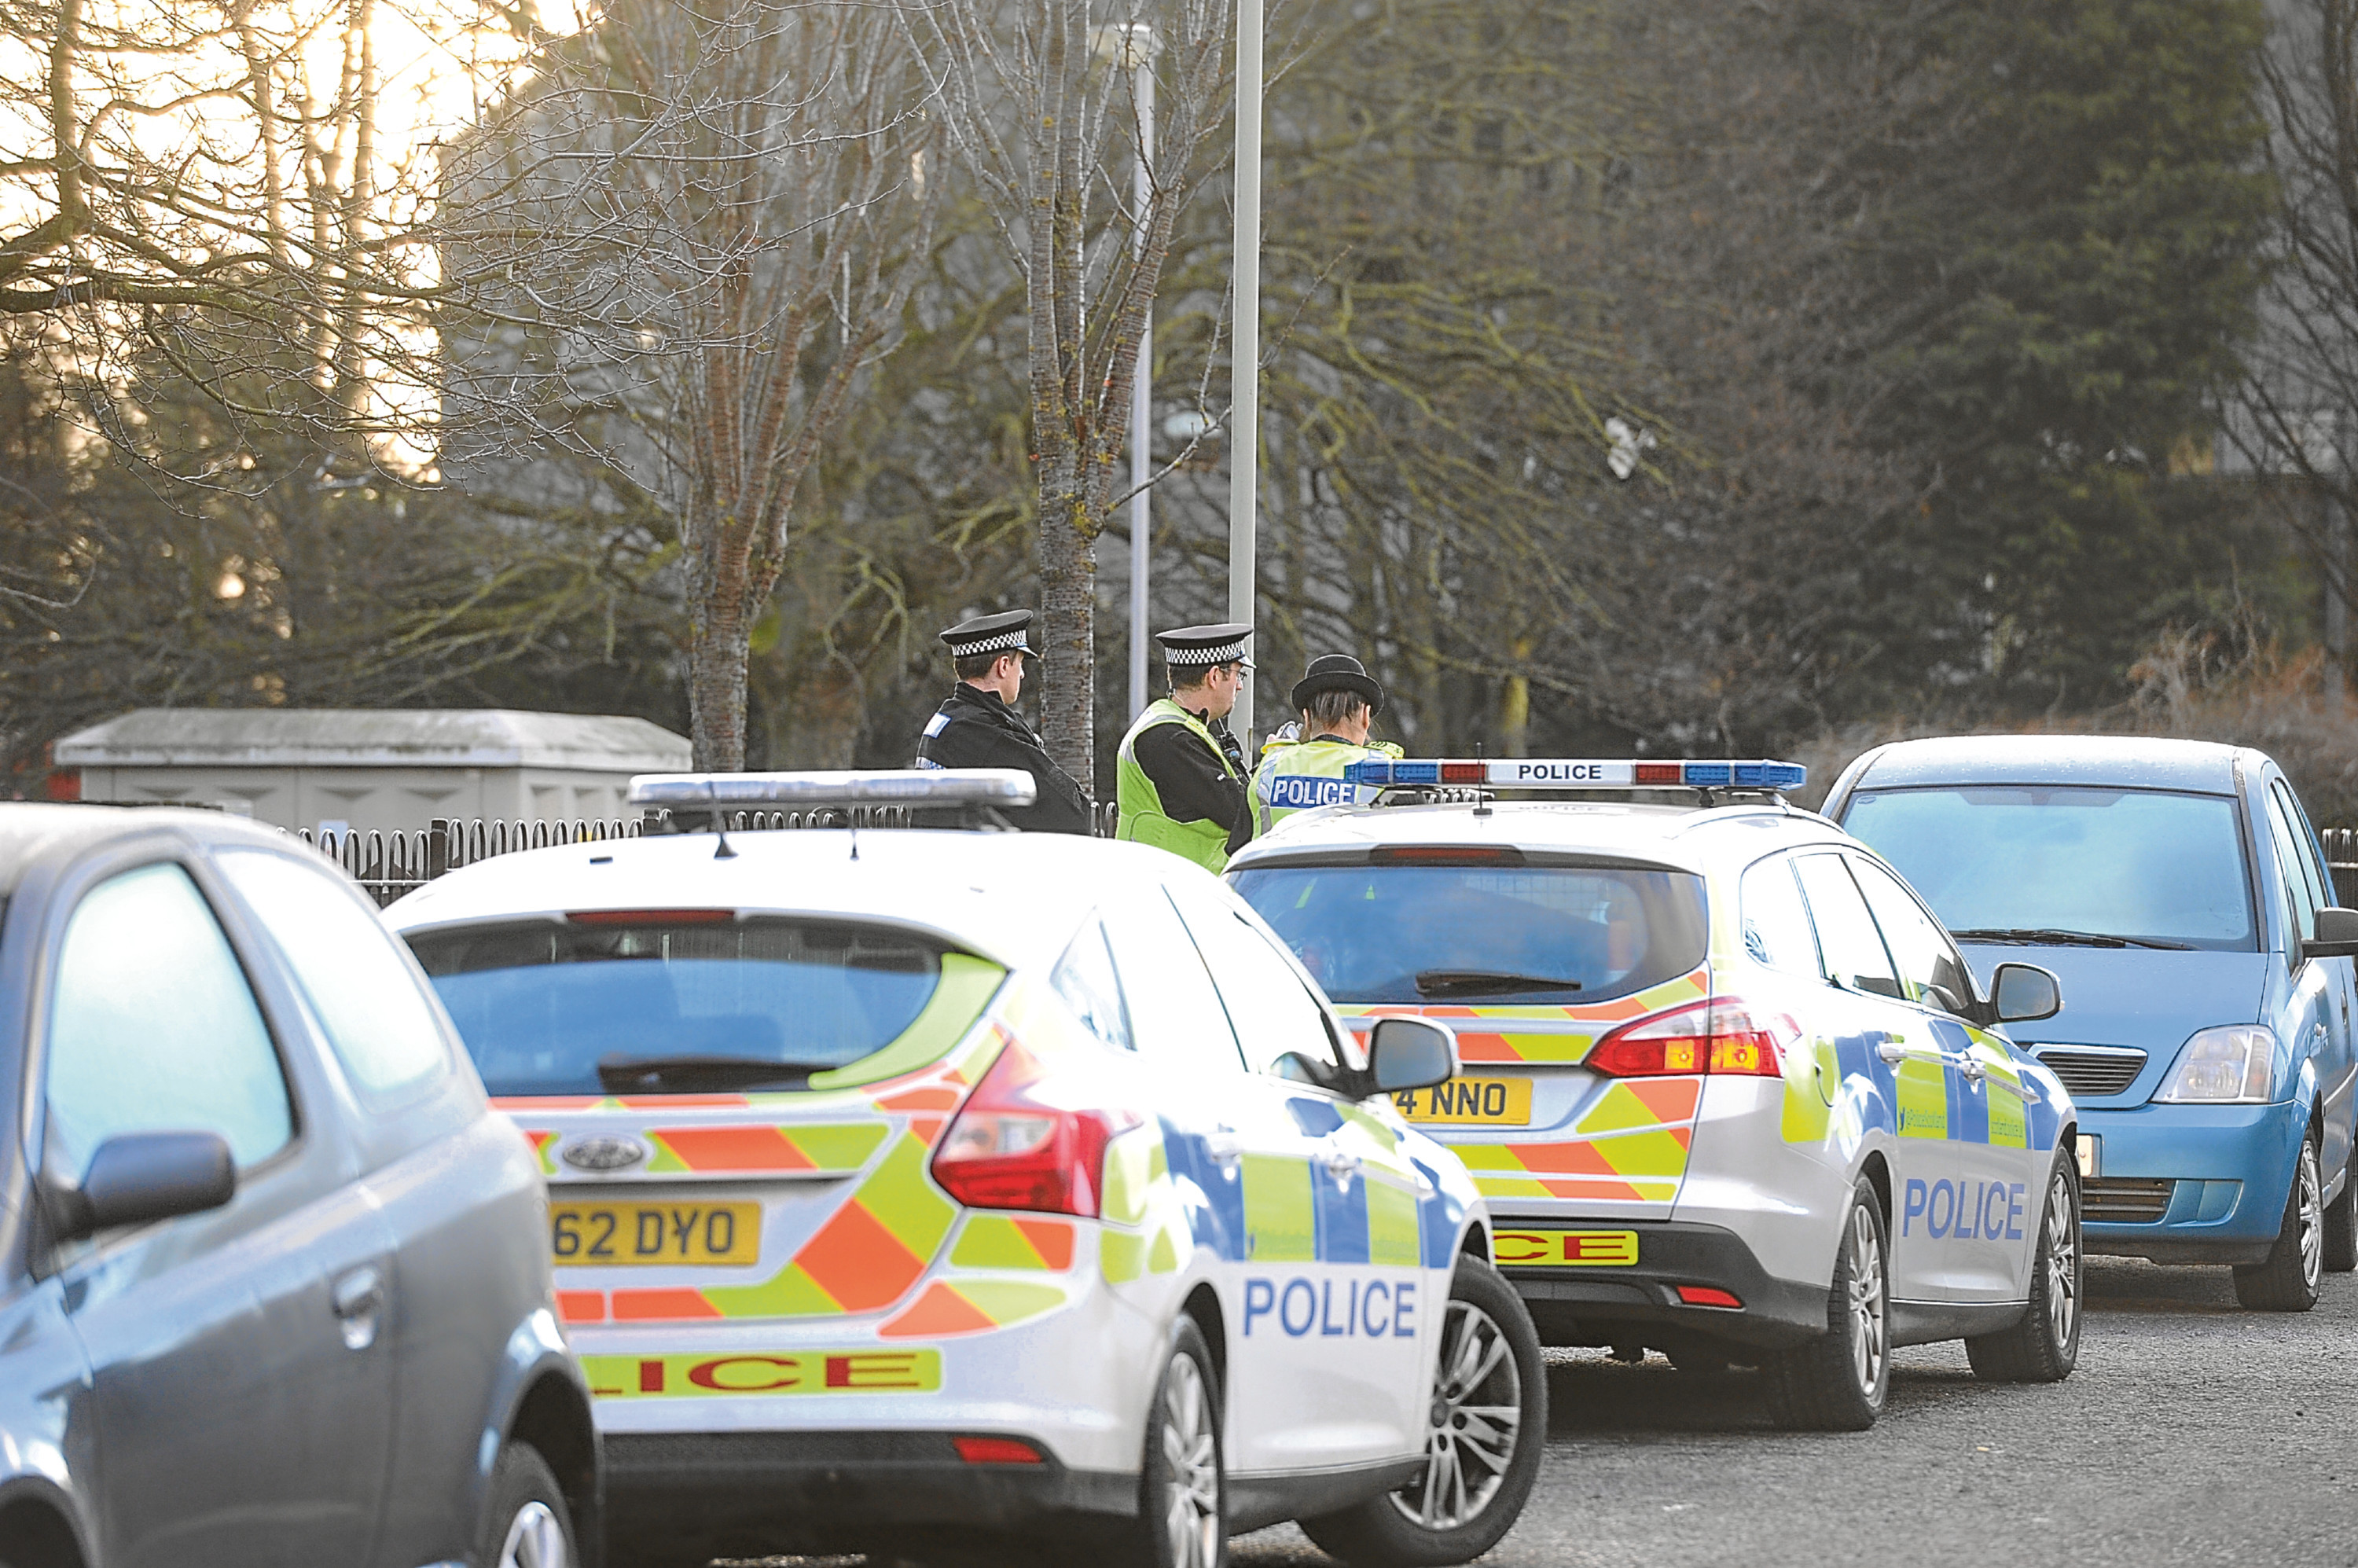 Police at the scene on Drumlanrig Drive.